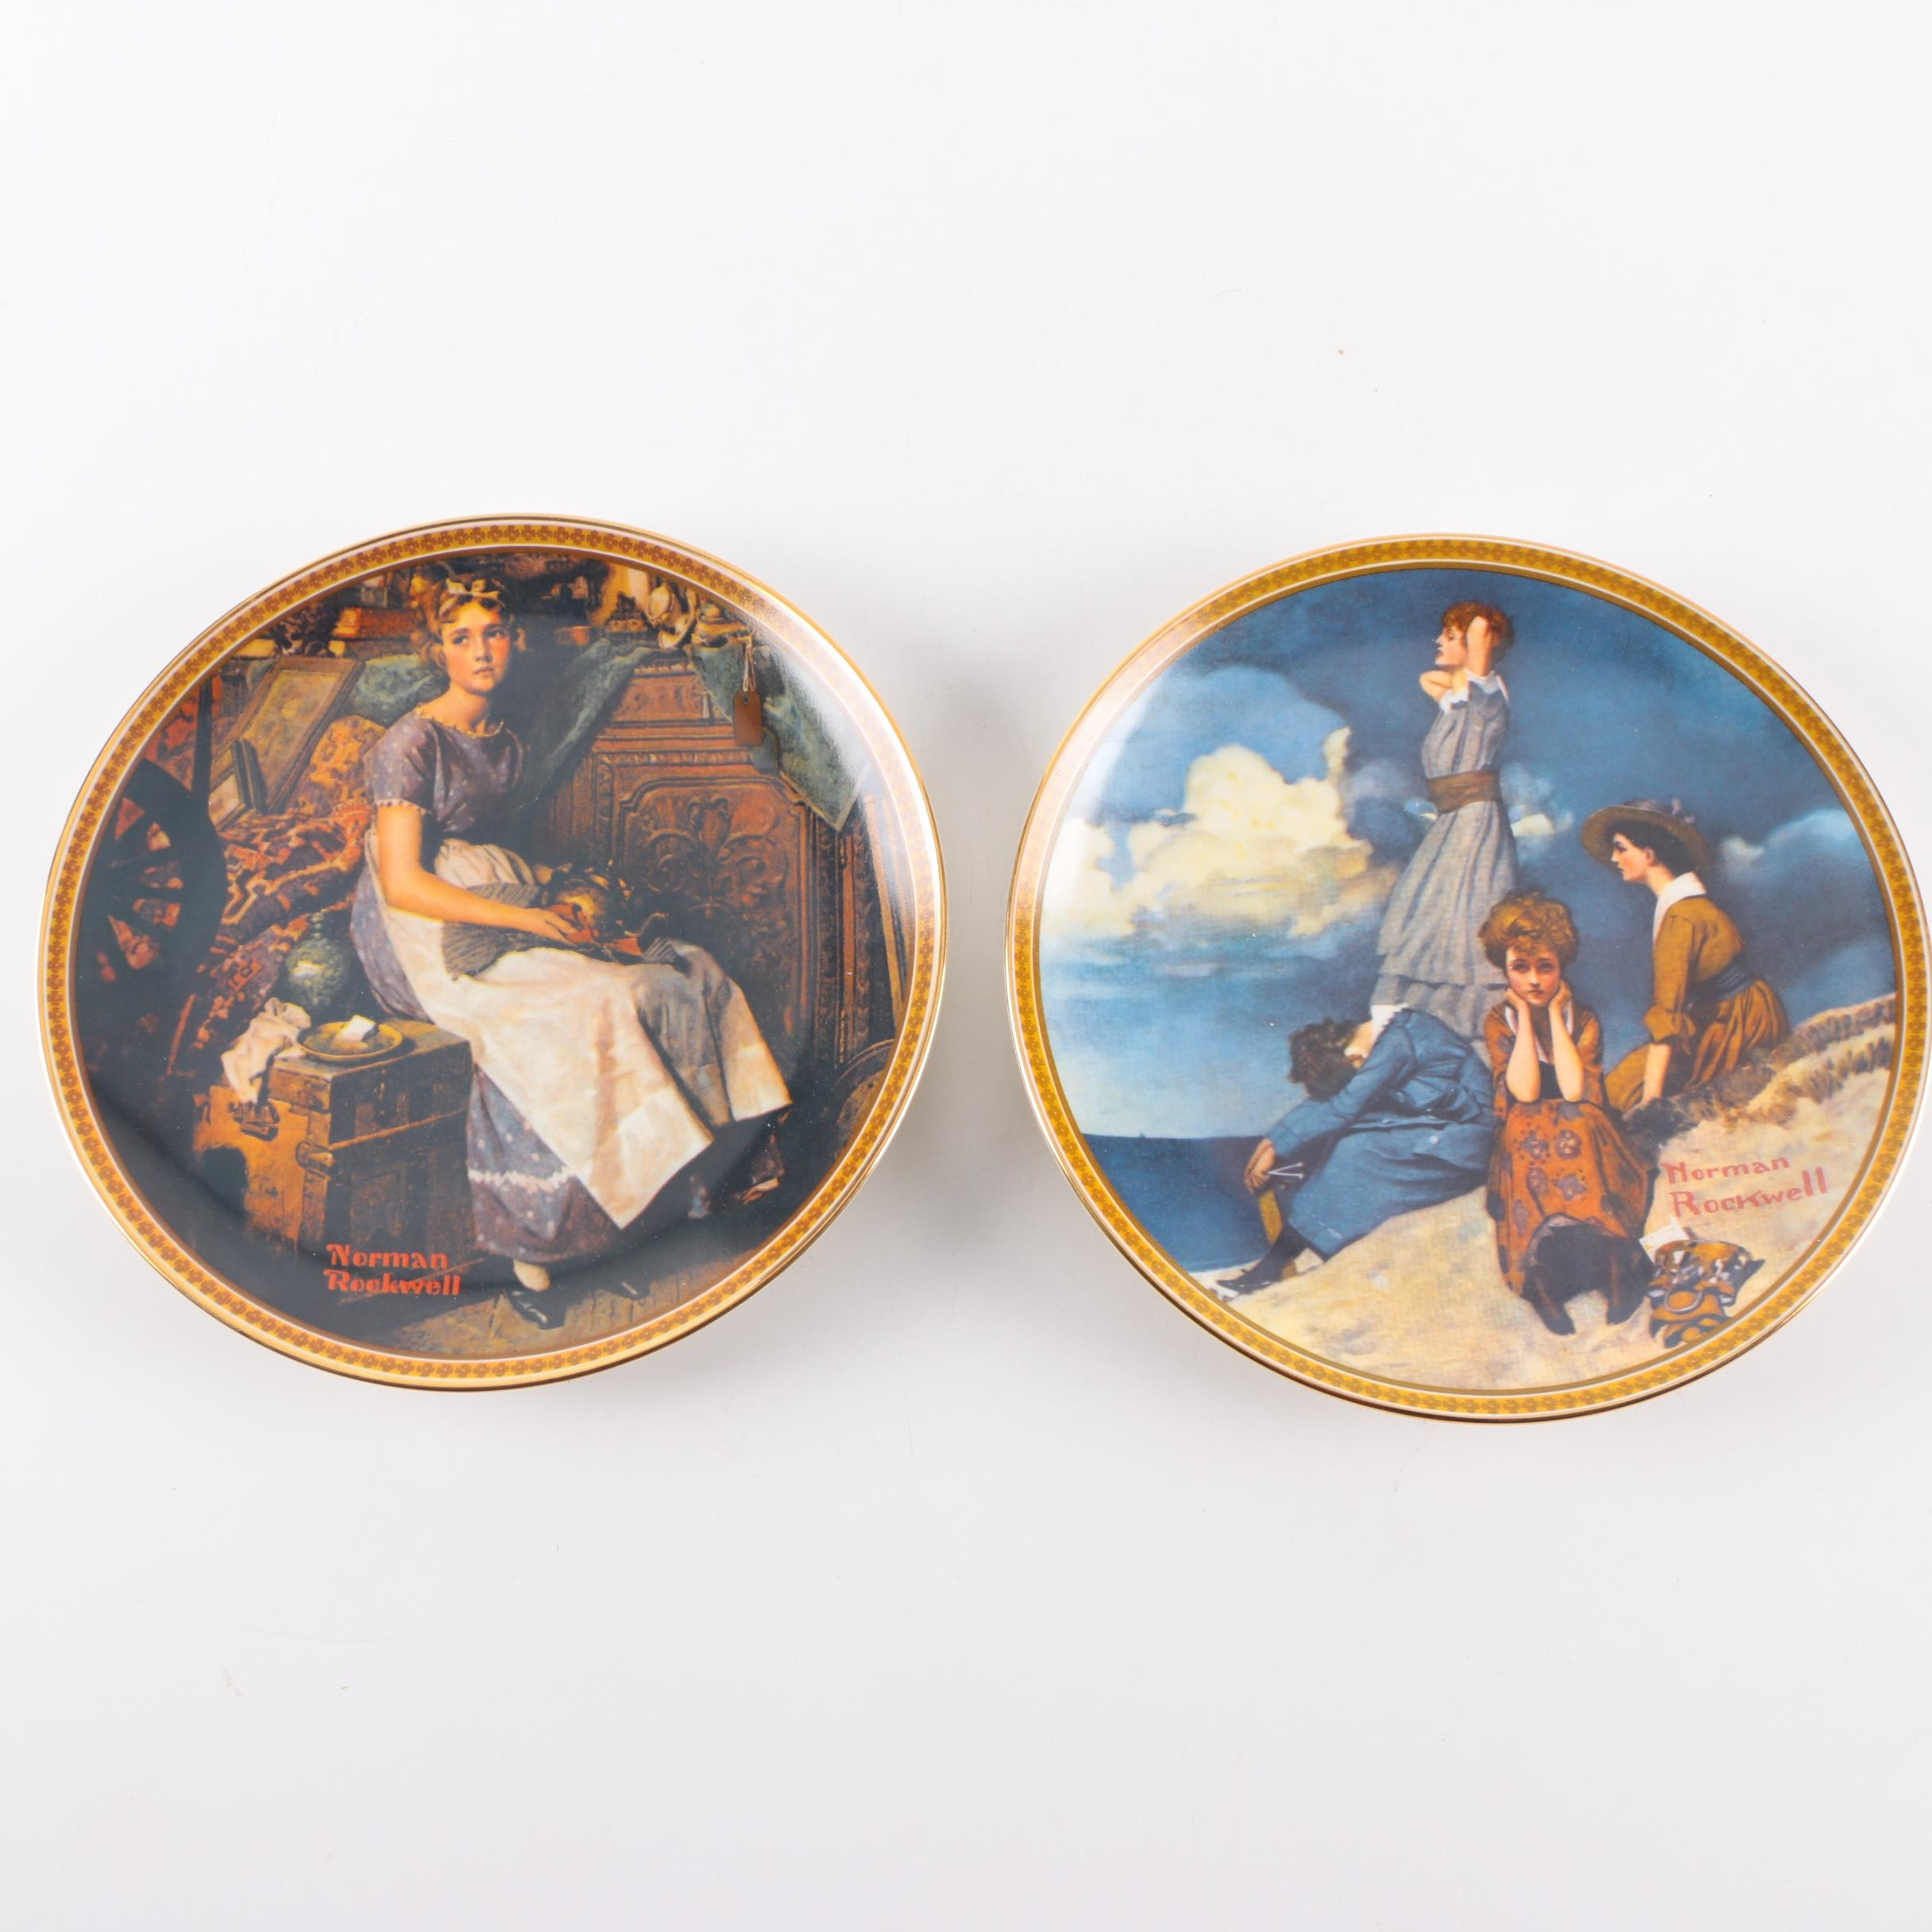 Knowles Norman Rockwell Limited Edition Collectors Plates